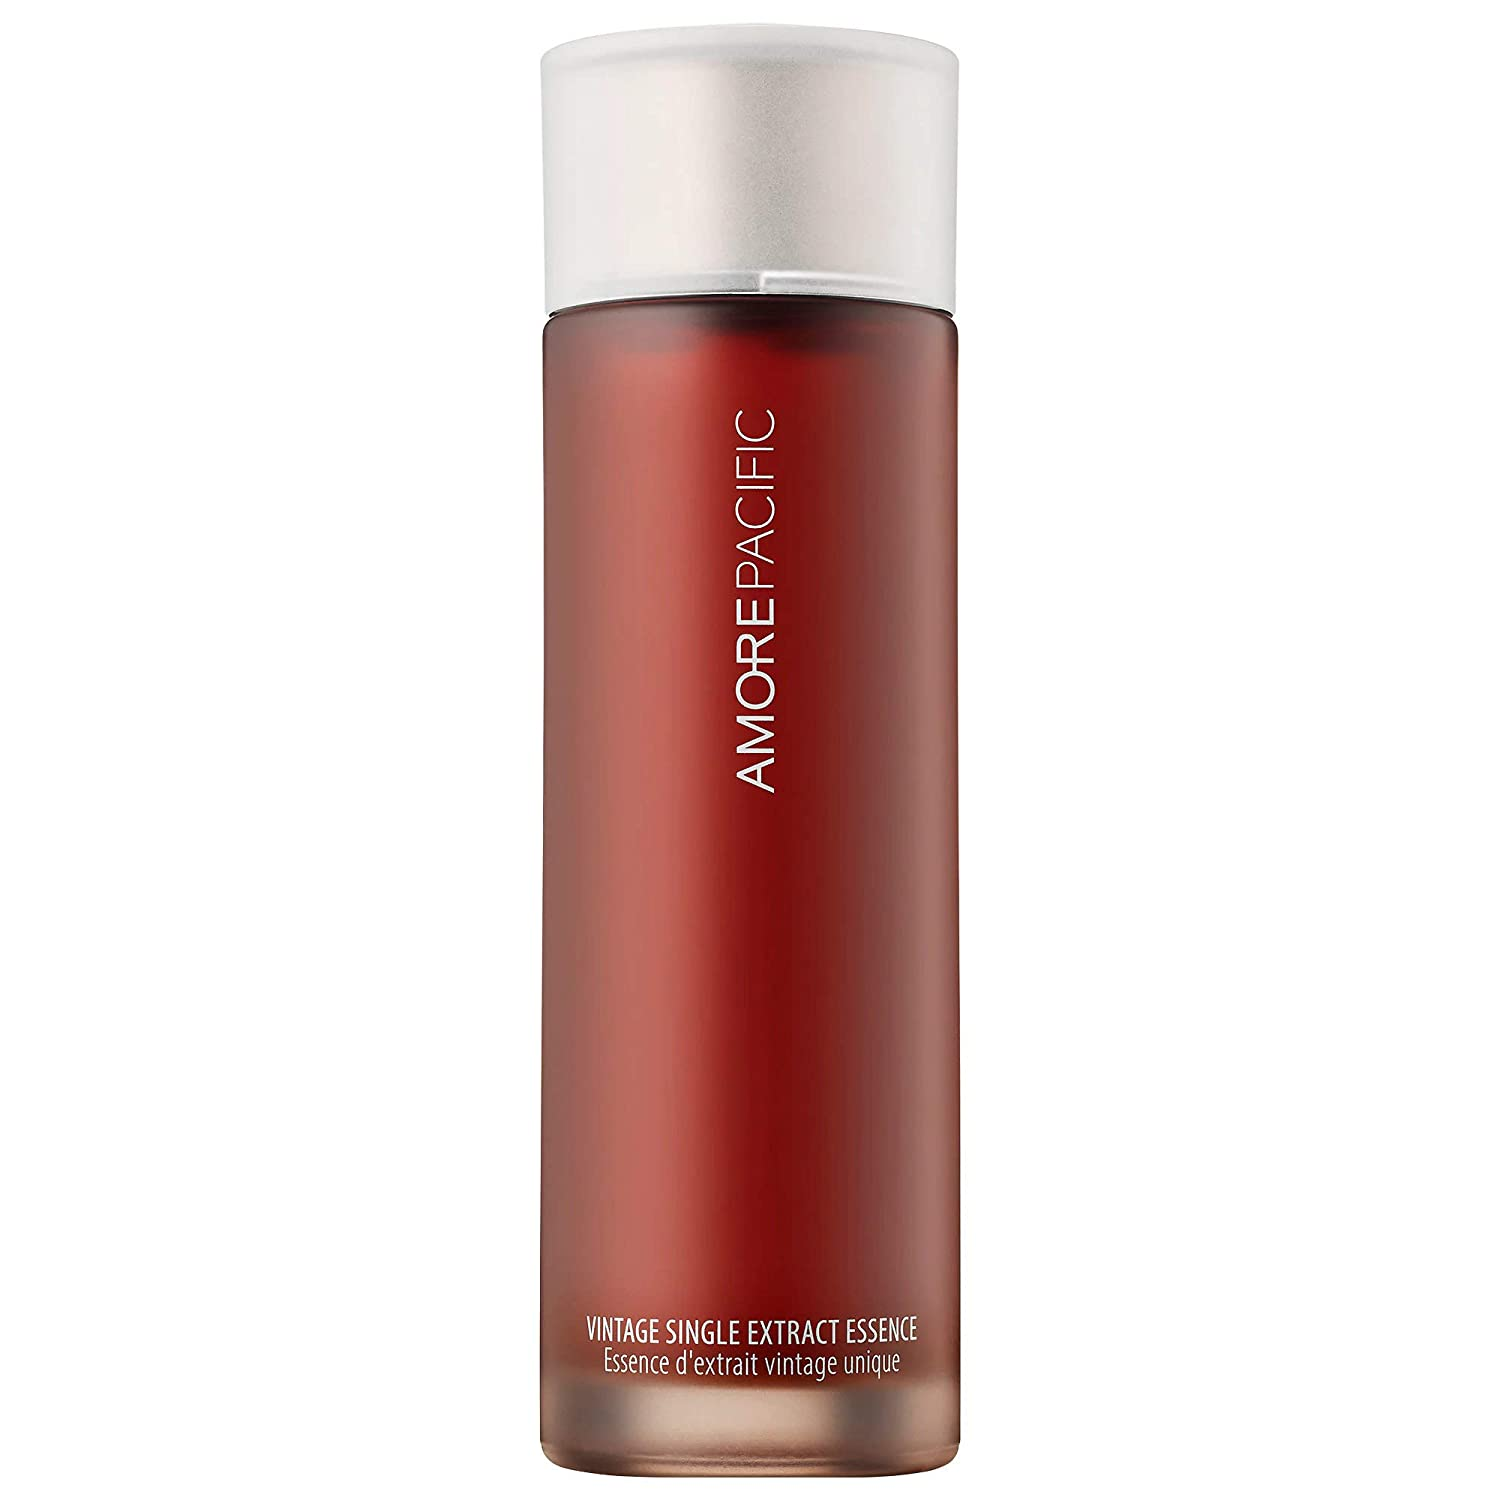 fermented-beauty-products-amorepacific-vintage-single-extract-essence